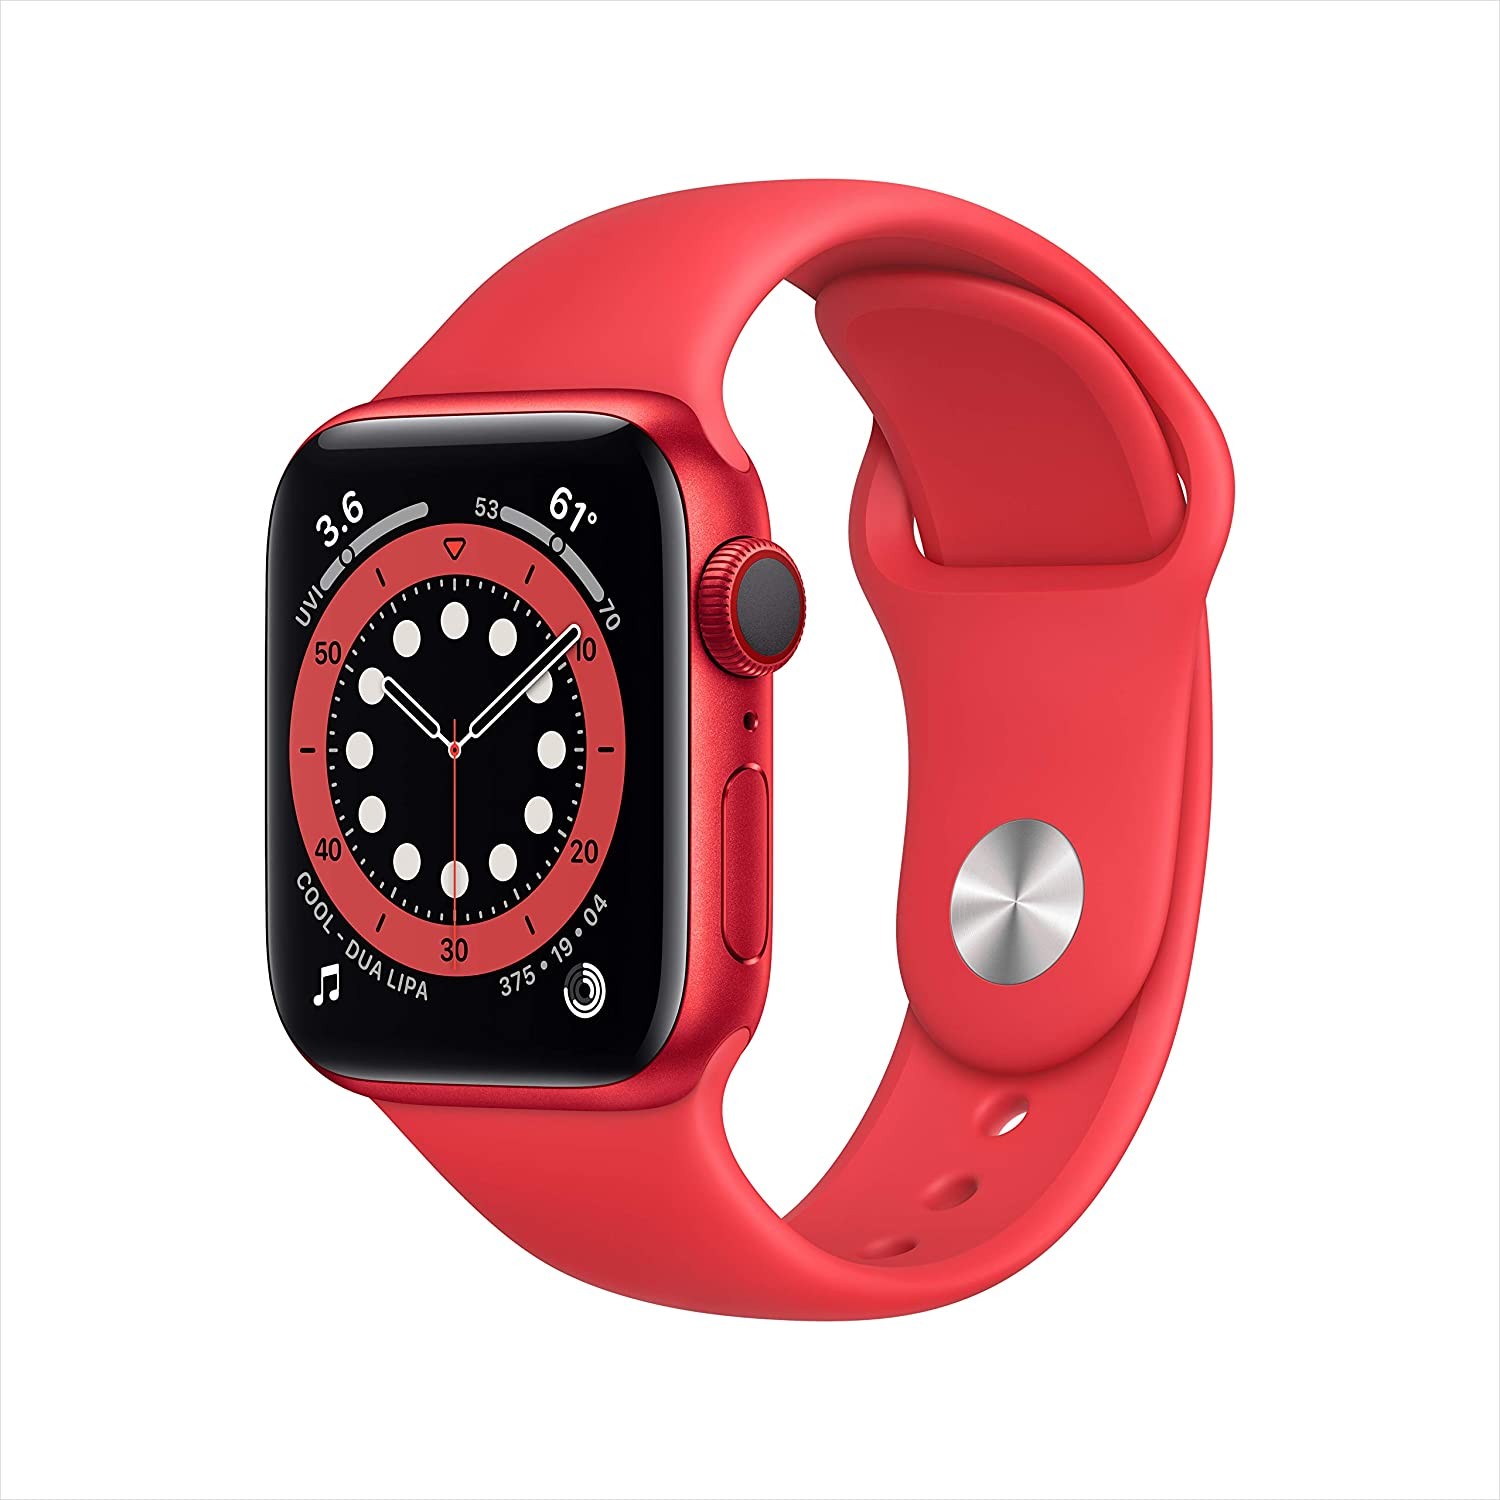 Apple Watch Series 6 Red Cellular